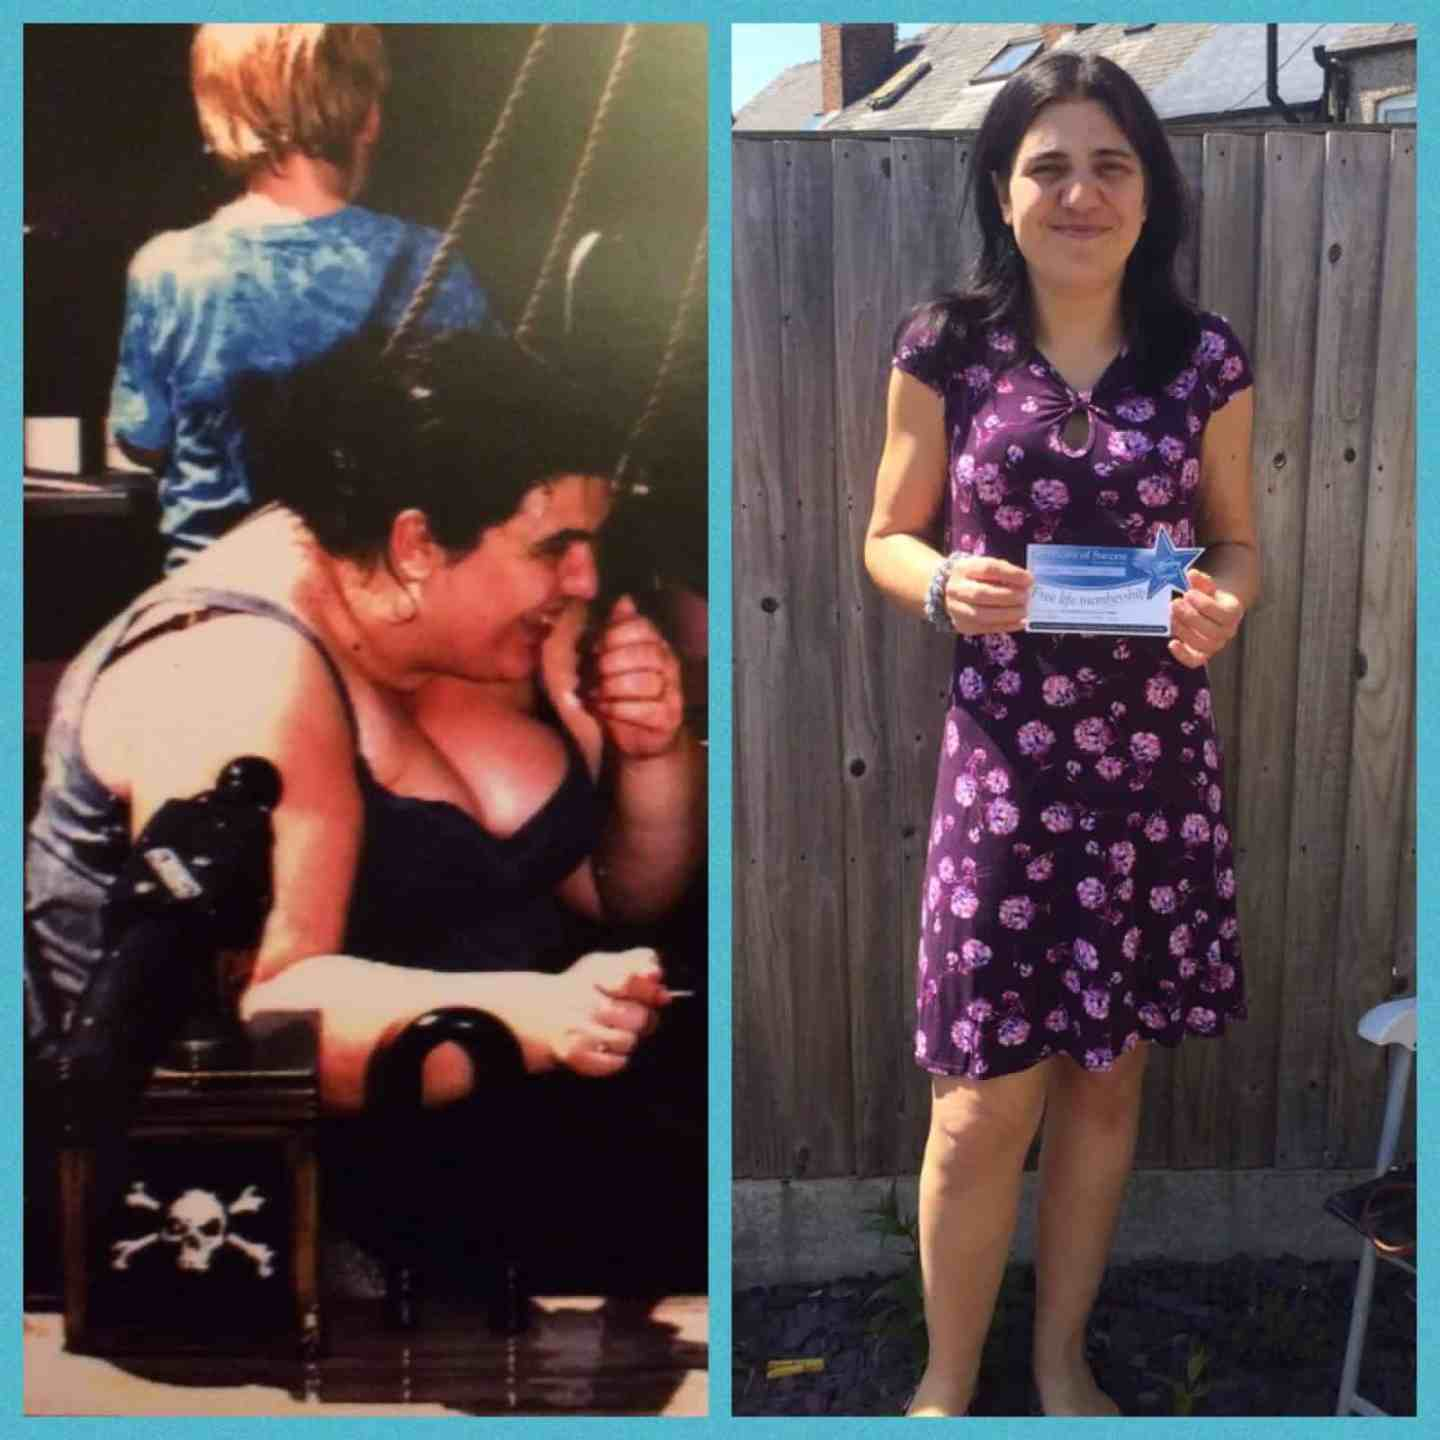 Jen before sitting on a ride with huge obese arms and chest, jen after wearing a dress standing smiling looking slim